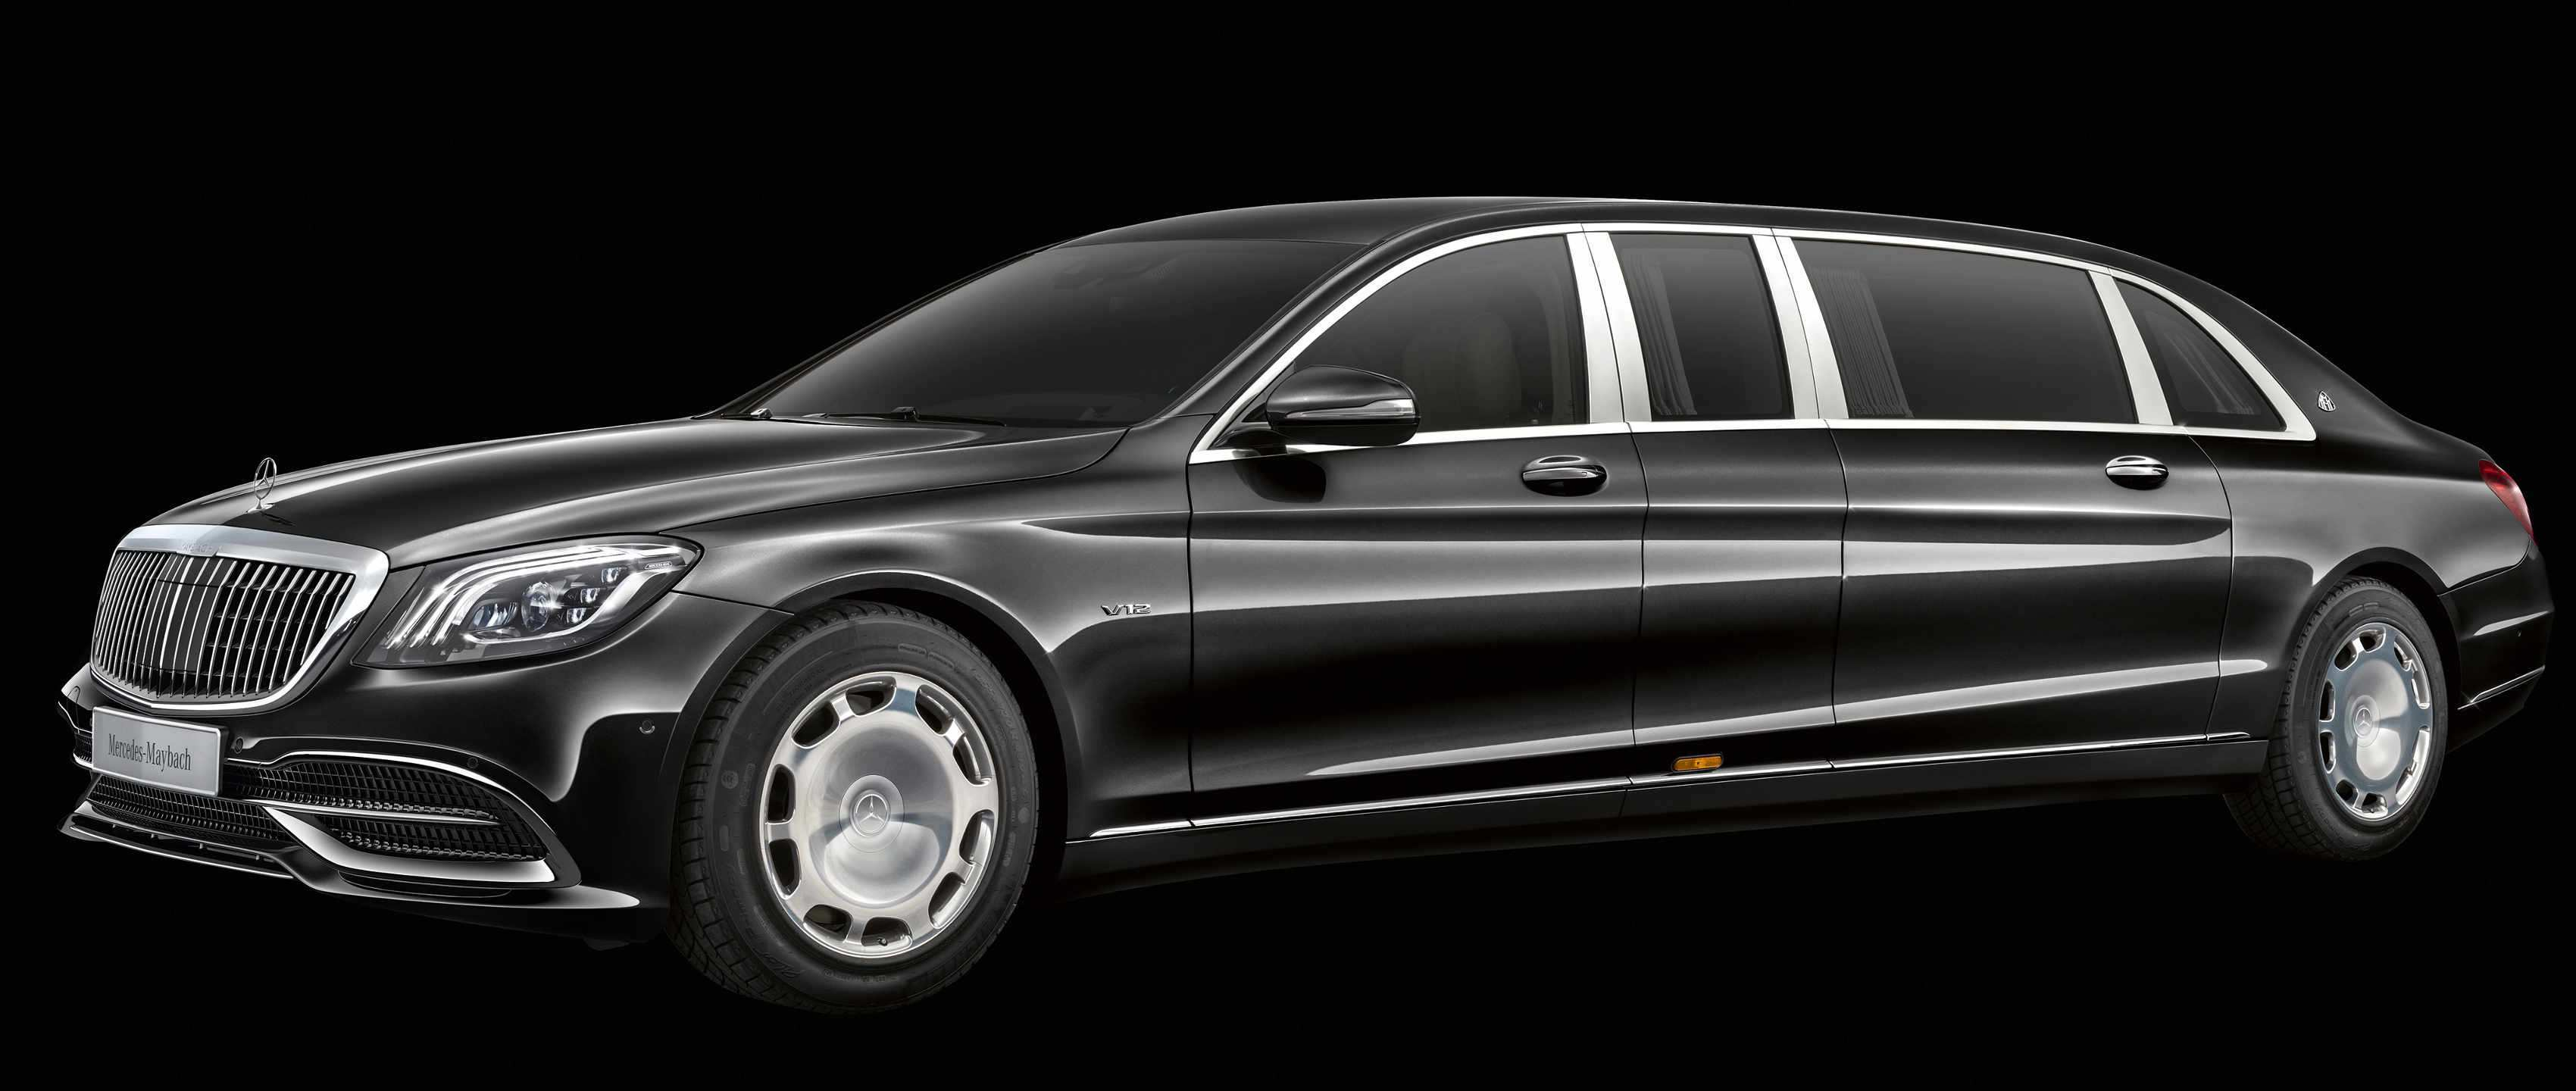 53 The Best 2019 Mercedes Maybach S650 New Model And Performance